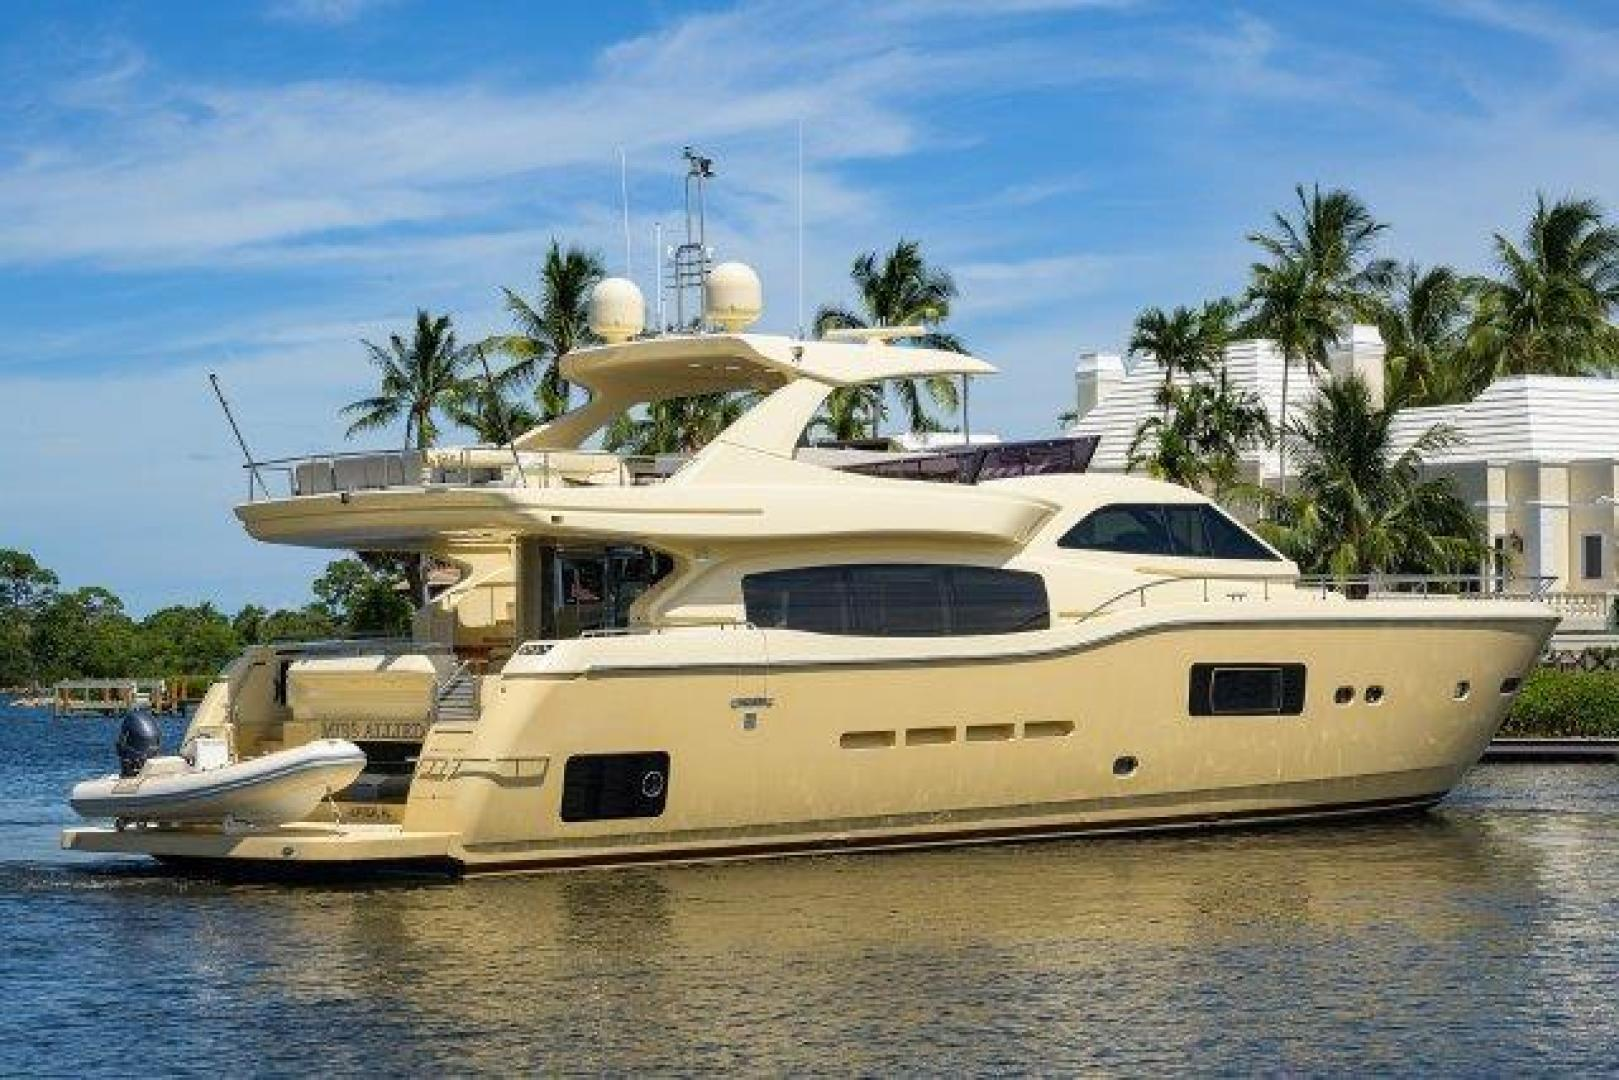 Ferretti Yachts-Altura 840 2010-MISS ALLIED Jupiter-Florida-United States-MISS ALLIED-1518376 | Thumbnail